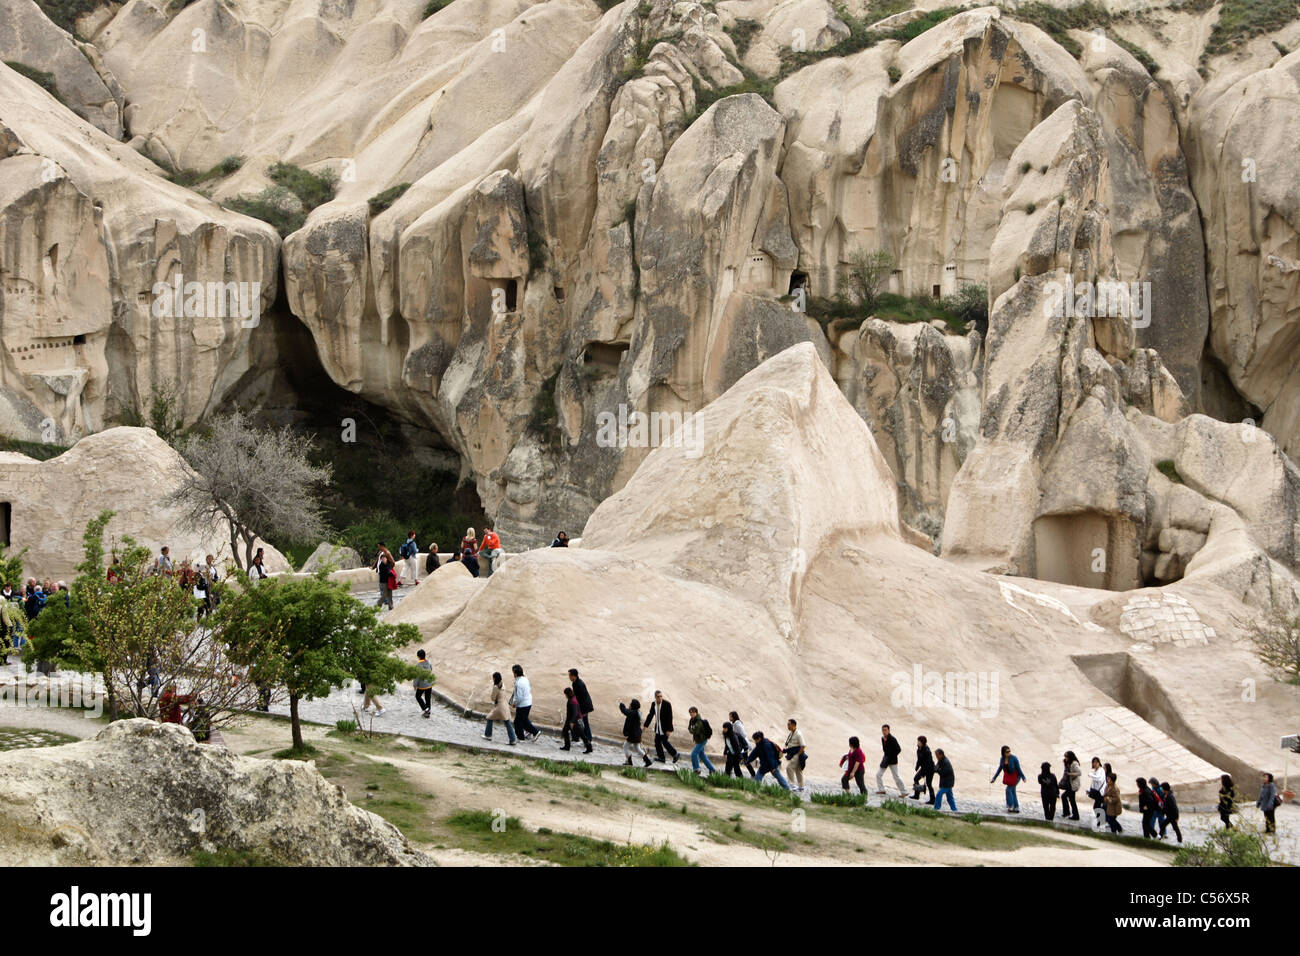 Rock-hewn dwellings and church at Goreme Open-Air Museum, Cappadocia, Turkey - Stock Image